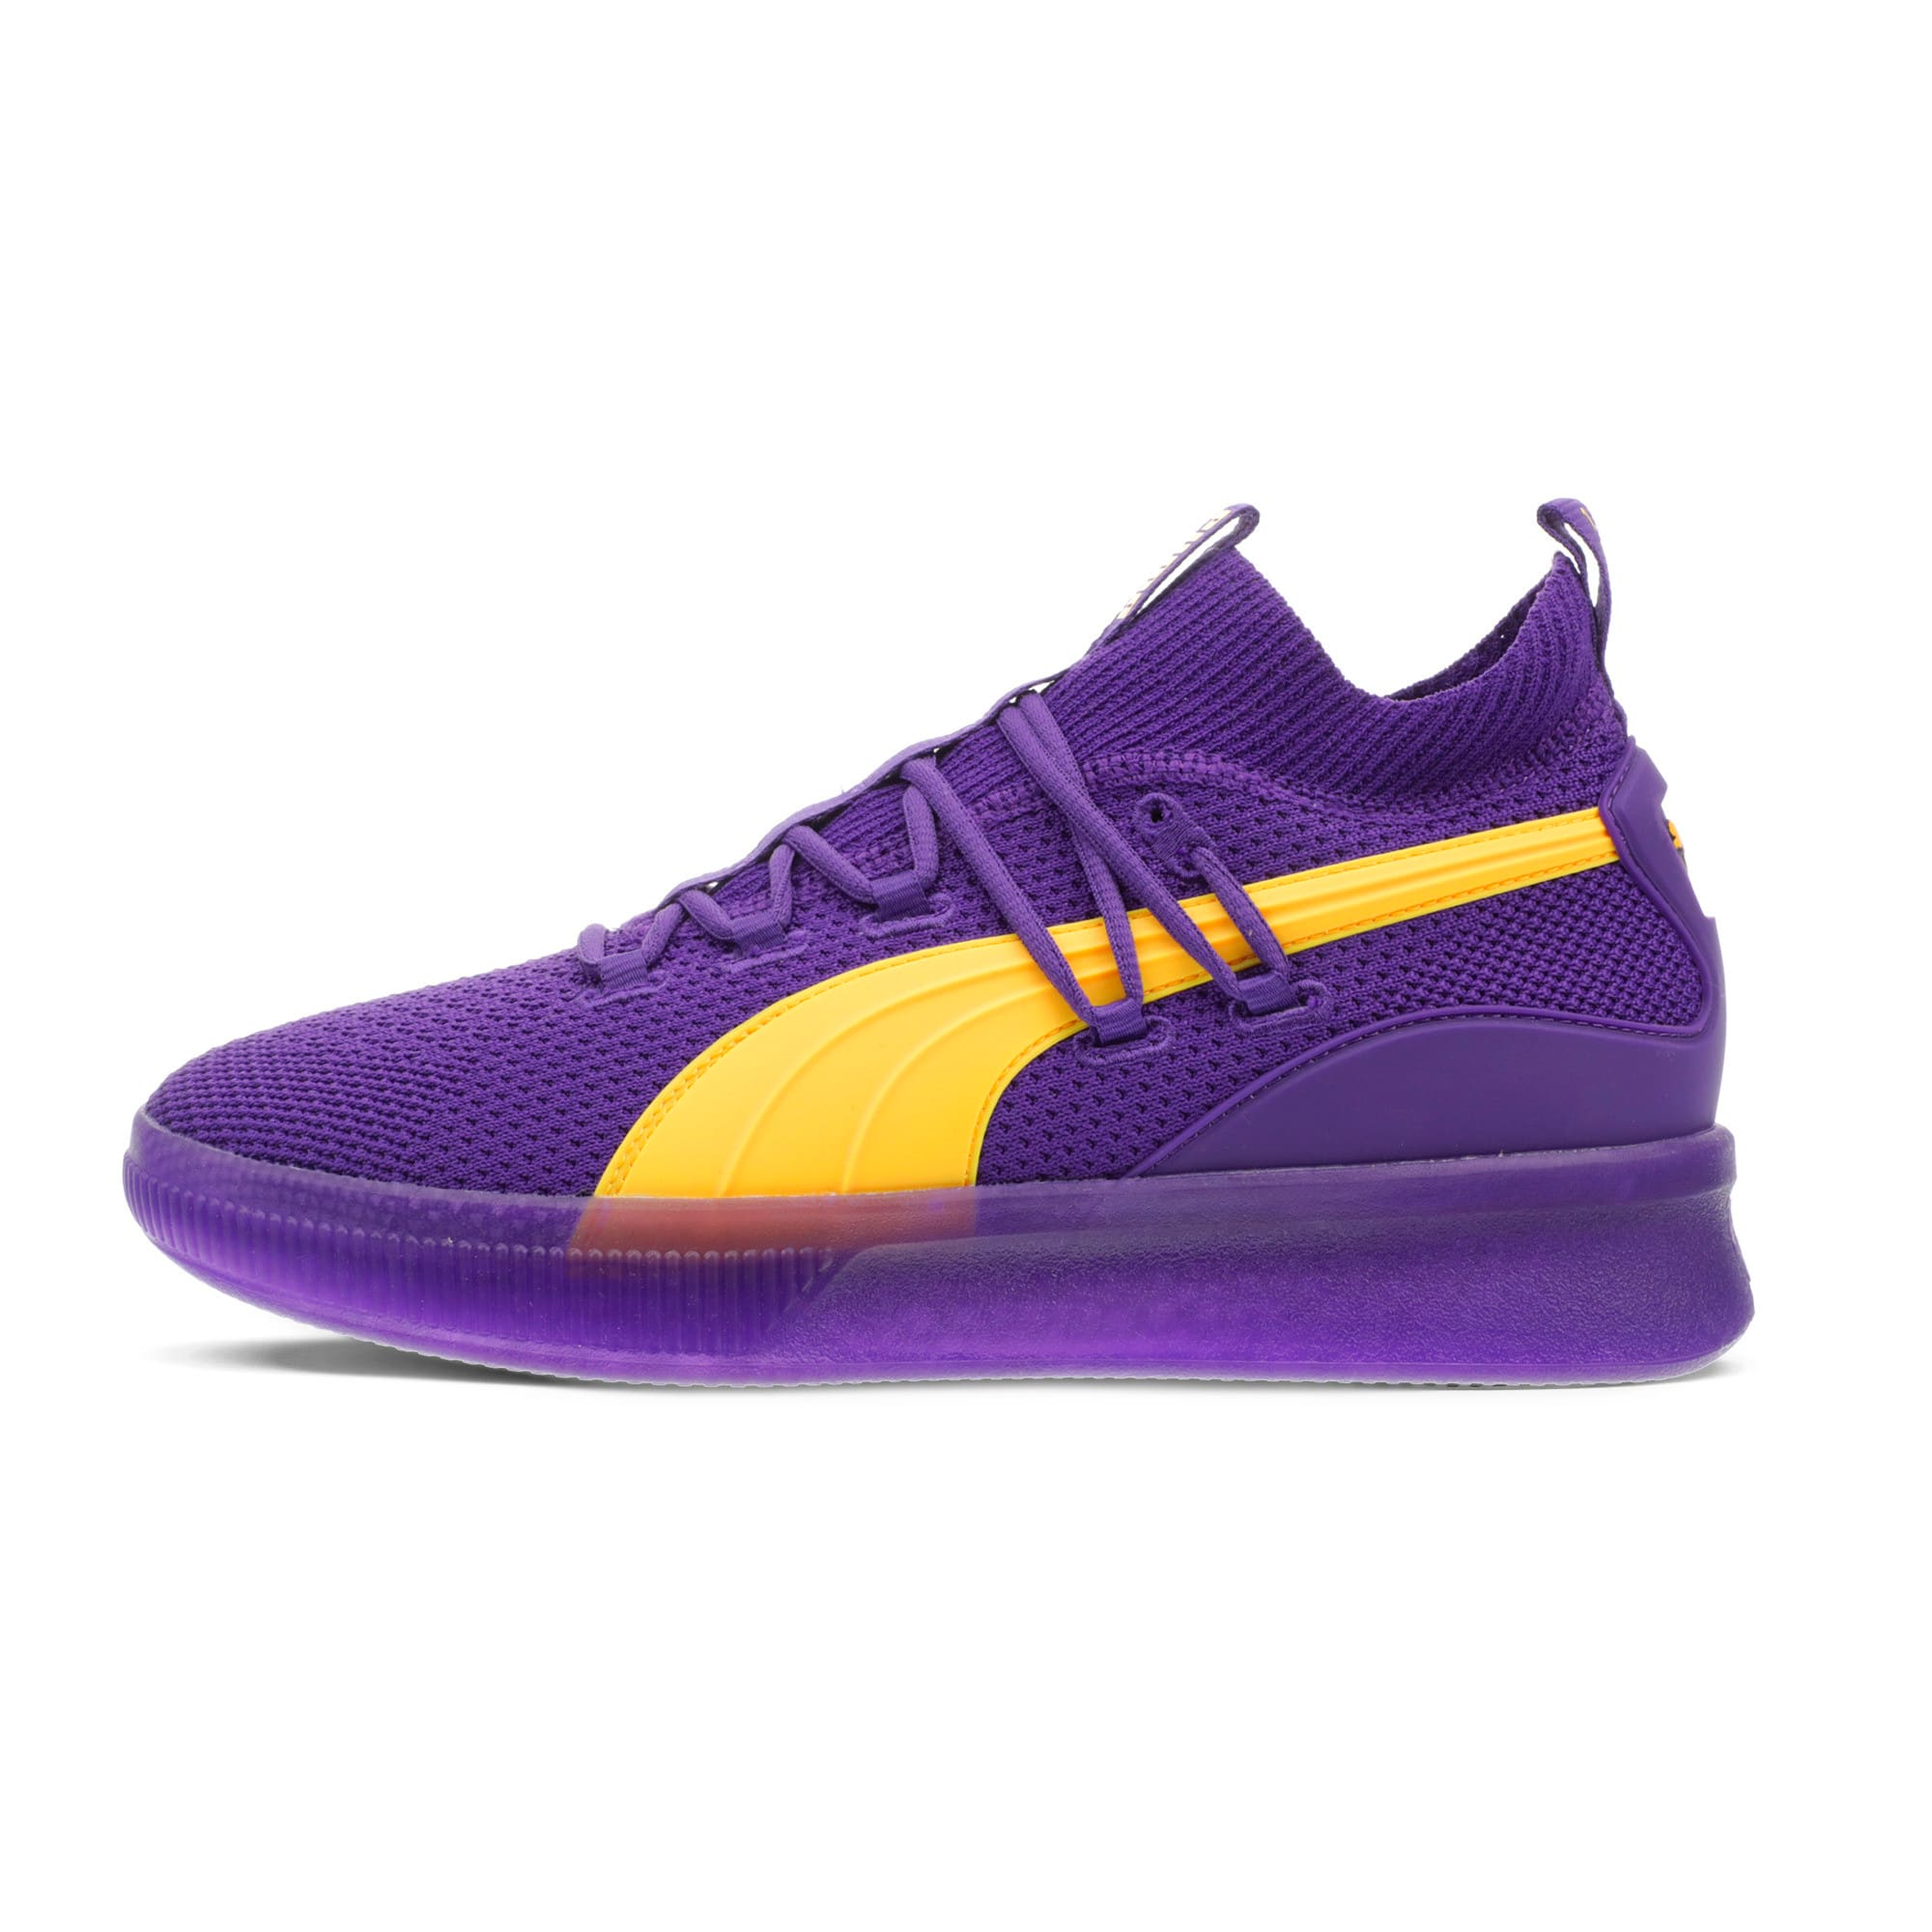 Thumbnail 1 of Clyde Court Core Basketball Shoes, Prism Violet, medium